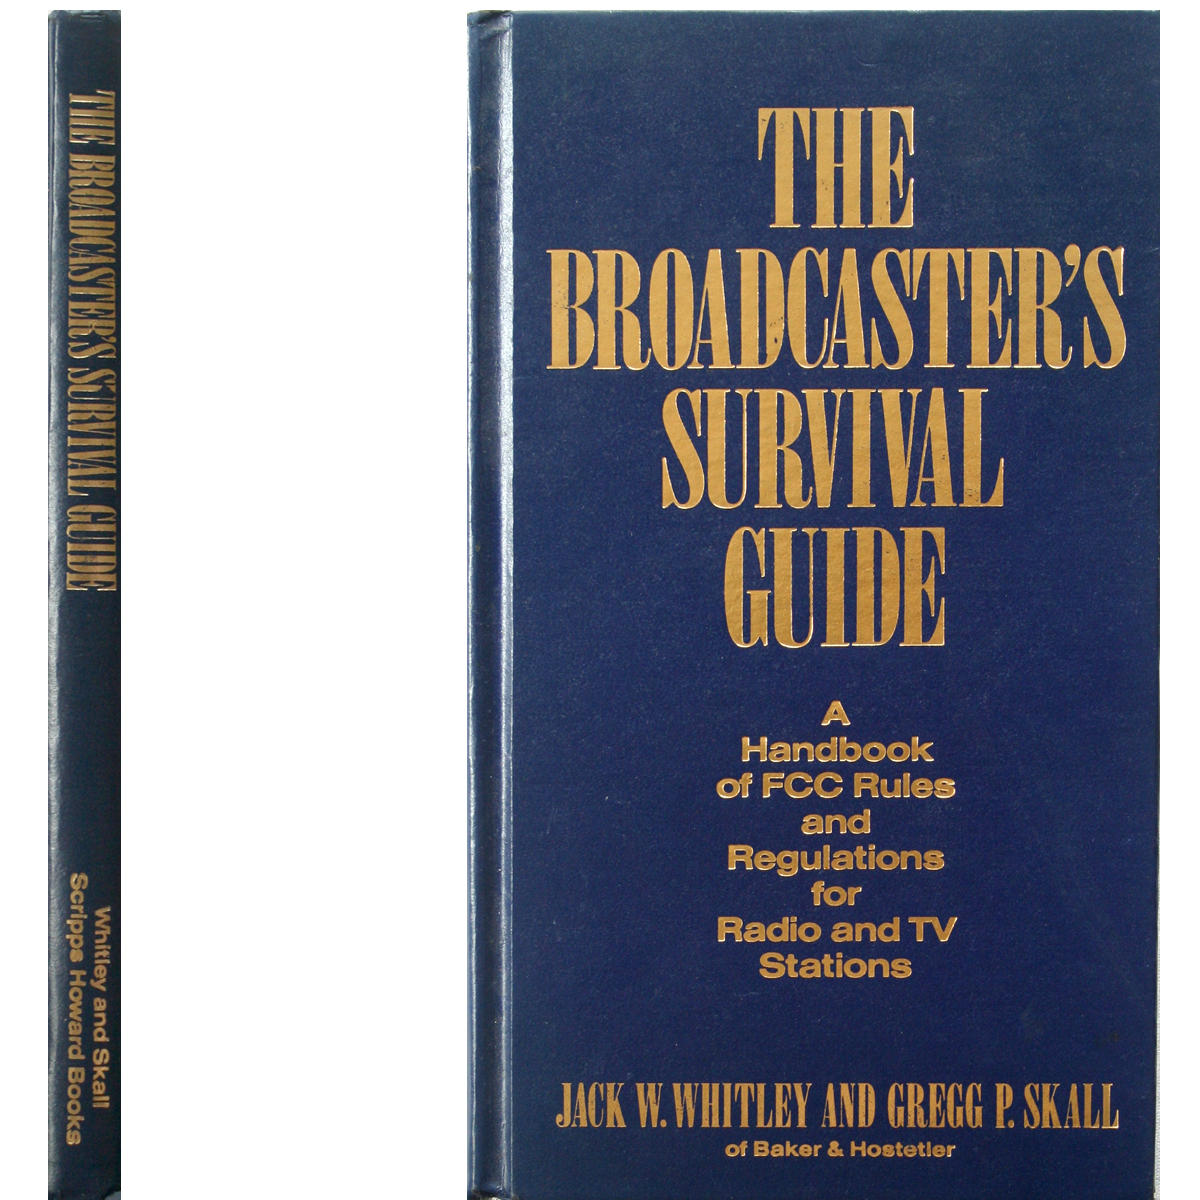 Broadcaster's Survival Guide RADIO & TV FCC Regulations